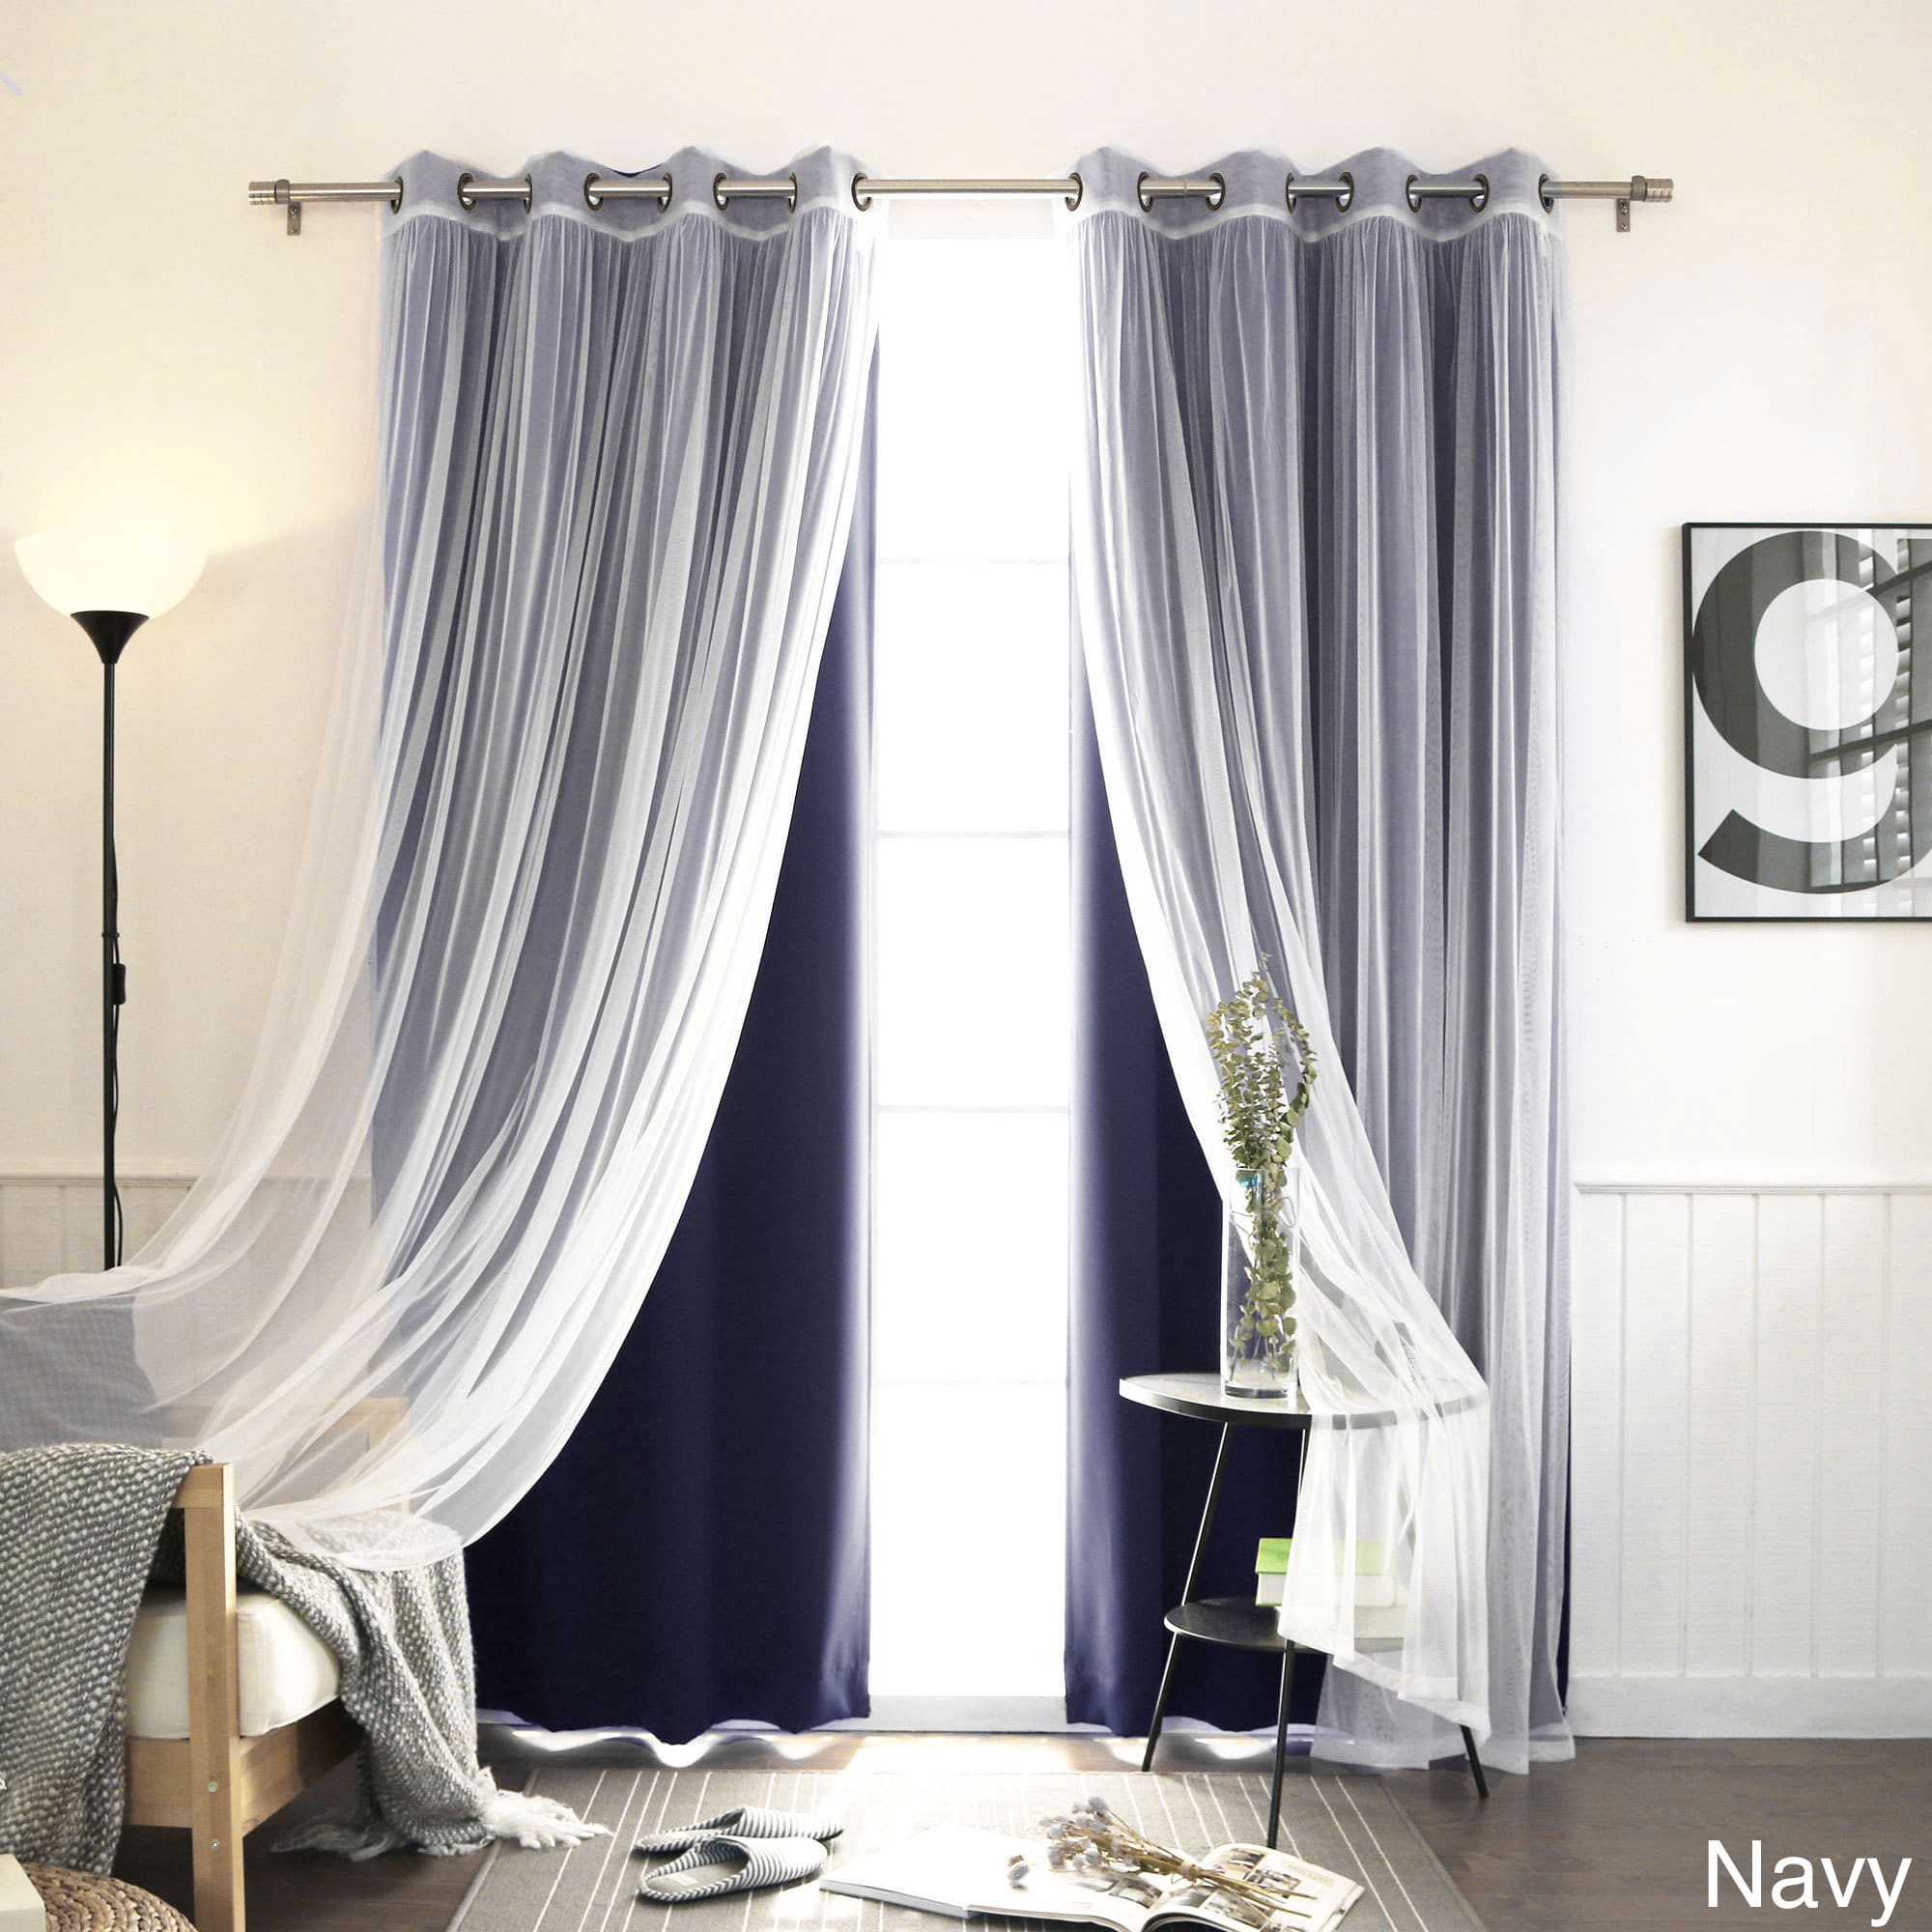 Aurora Home Mix & Match Blackout Tulle Lace Bronze Grommet 4 Intended For Mix And Match Blackout Blackout Curtains Panel Sets (View 11 of 20)